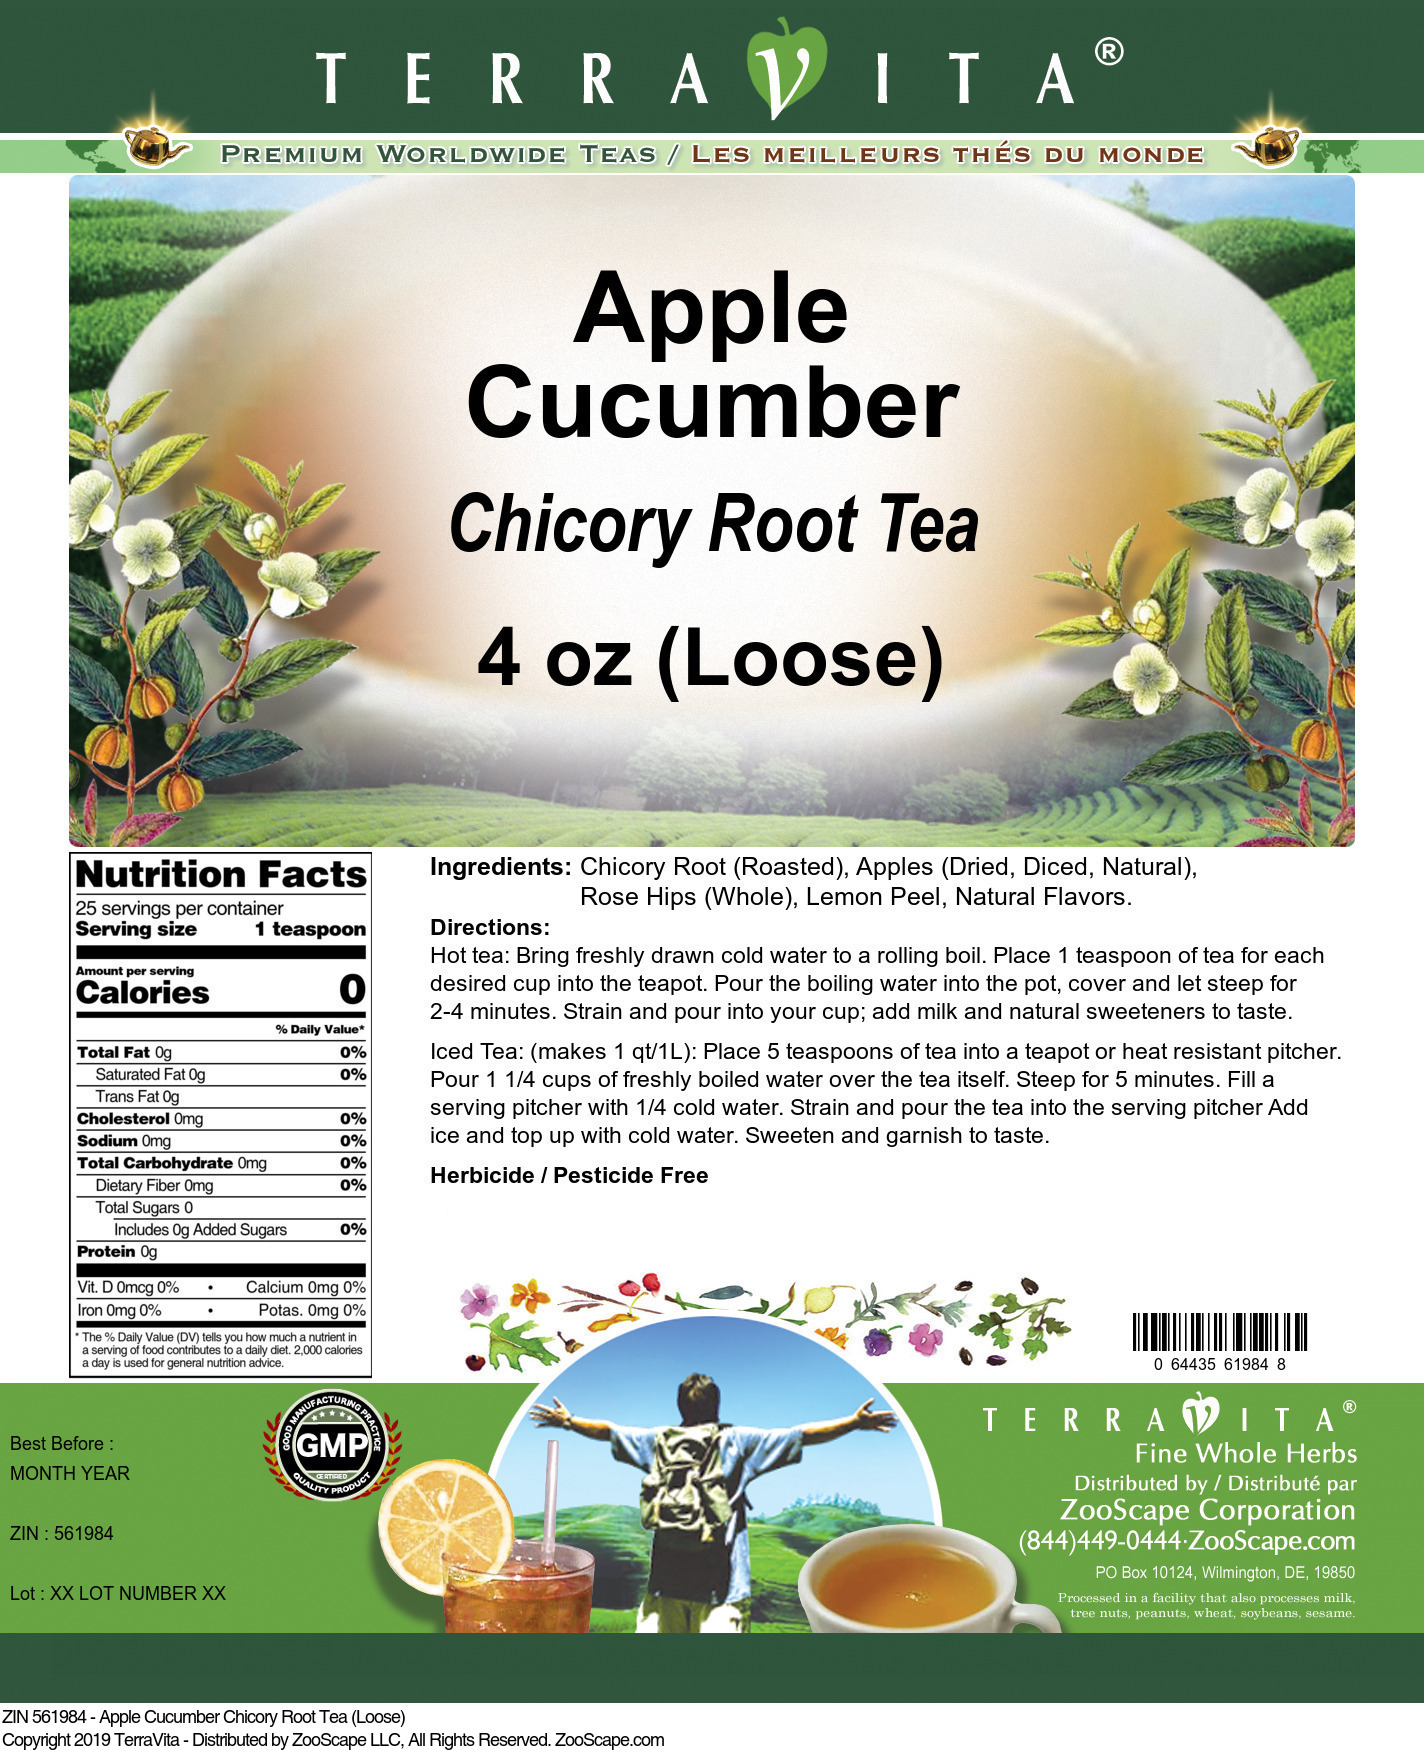 Apple Cucumber Chicory Root